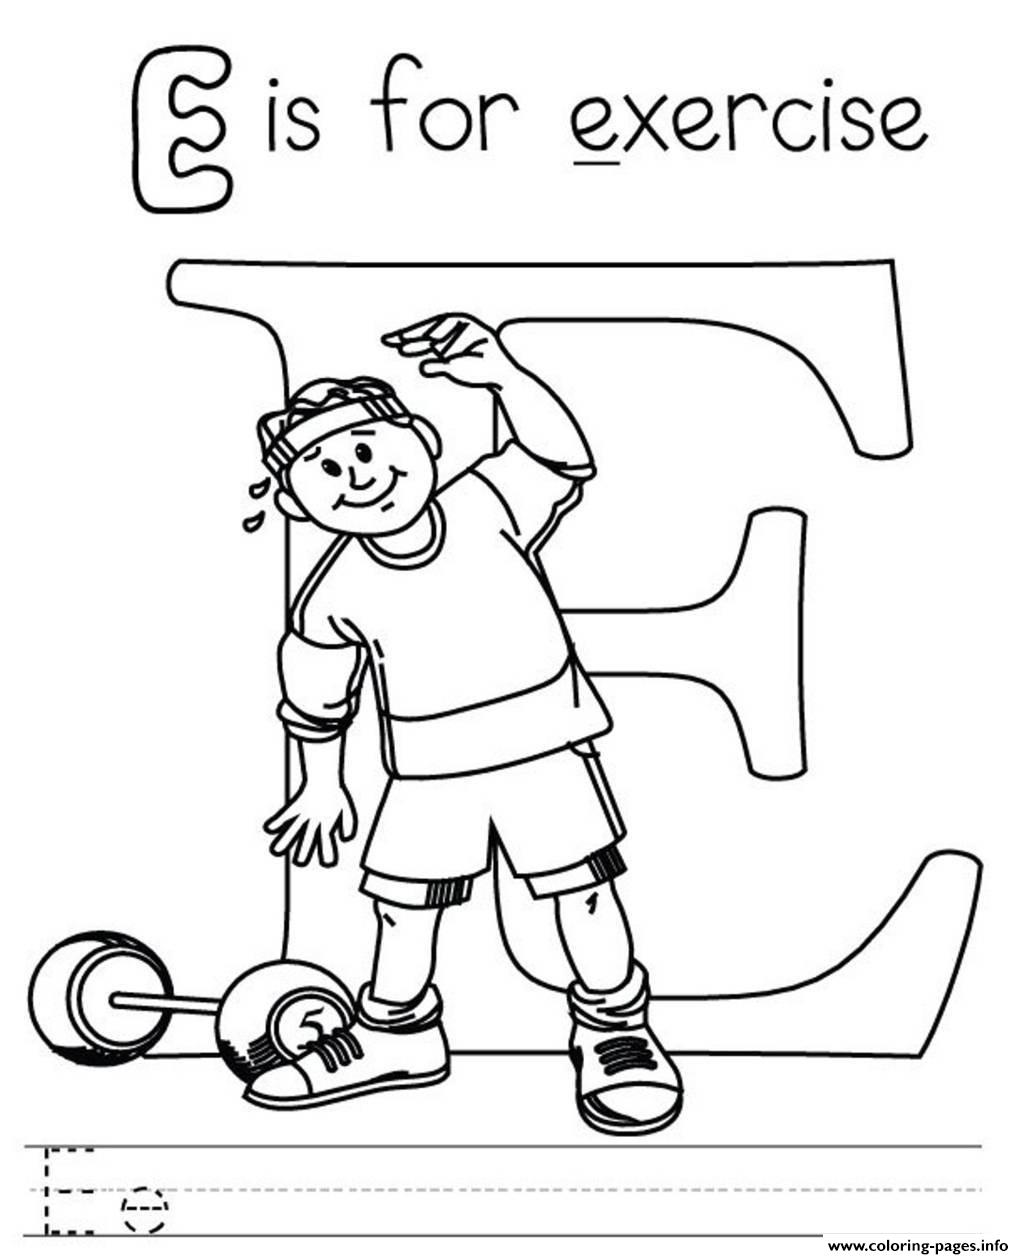 exercise alphabet s free0136 coloring pages printable